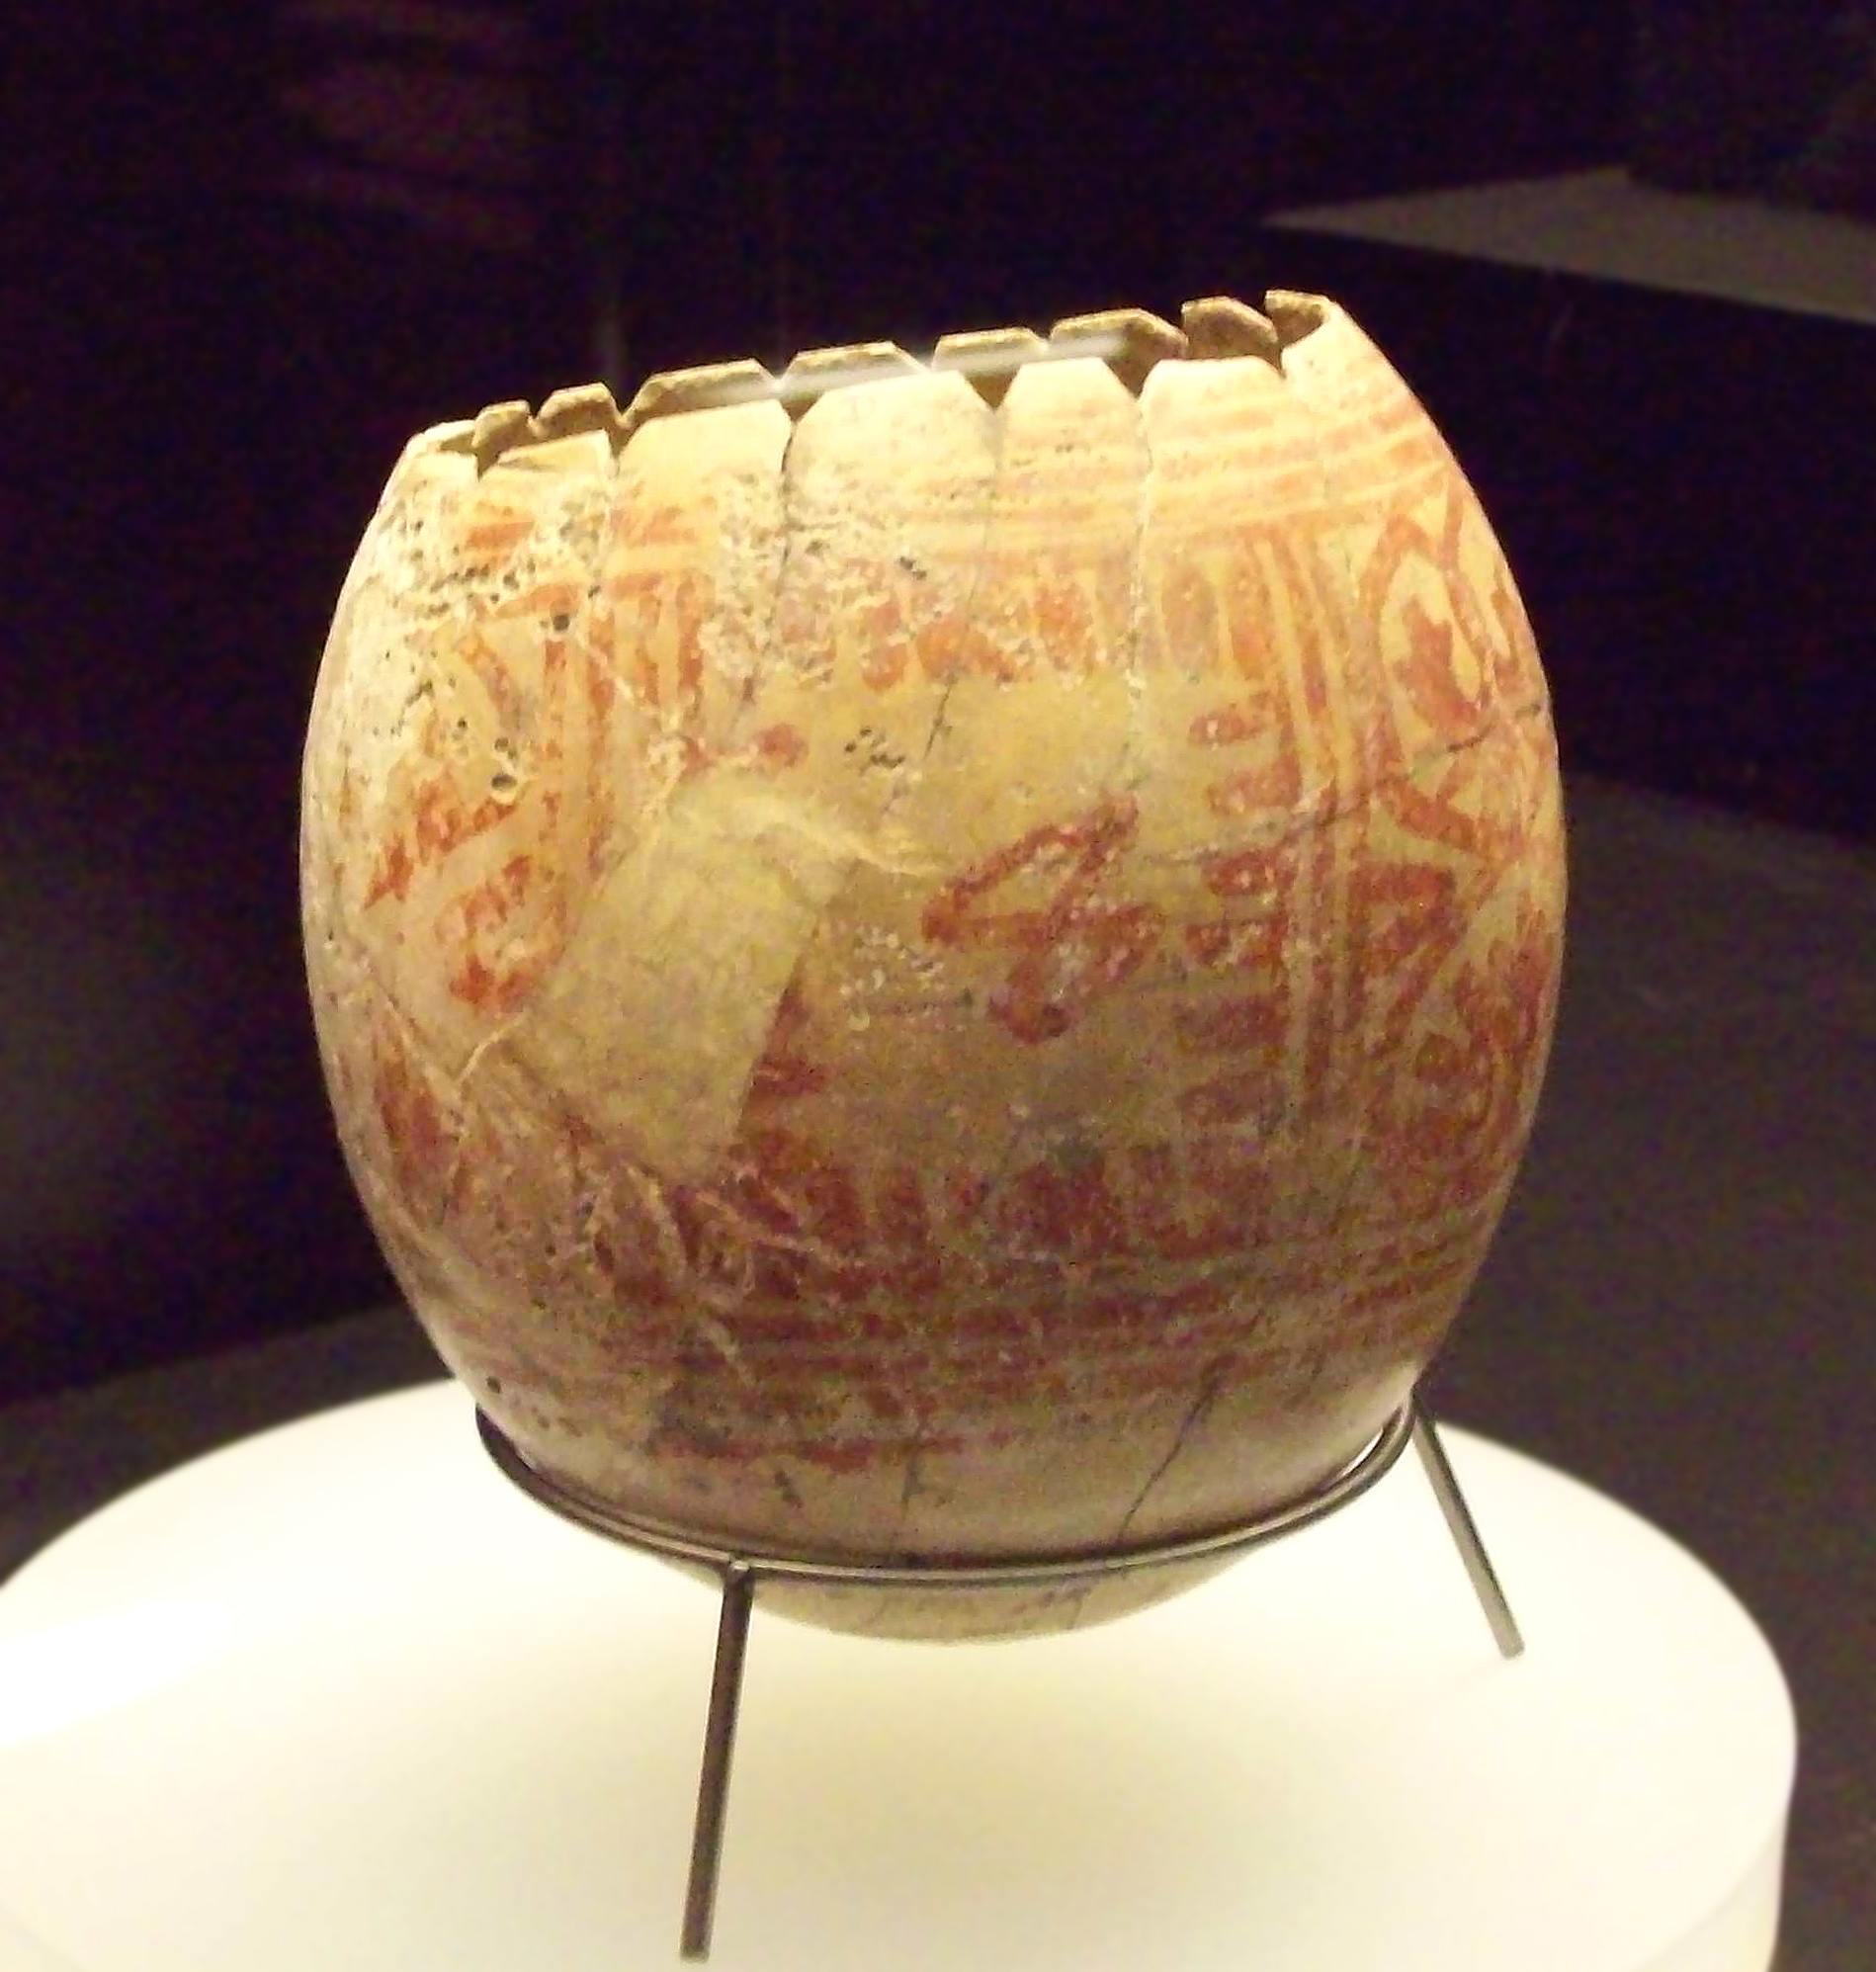 An ostrich egg decorated with Punic artwork, discovered in Andalusia, Spain and dating from between 599 and 300 BC (By Luis García, CC BY-SA 3.0, https://commons.wikimedia.org/w/index.php?curid=6445410)